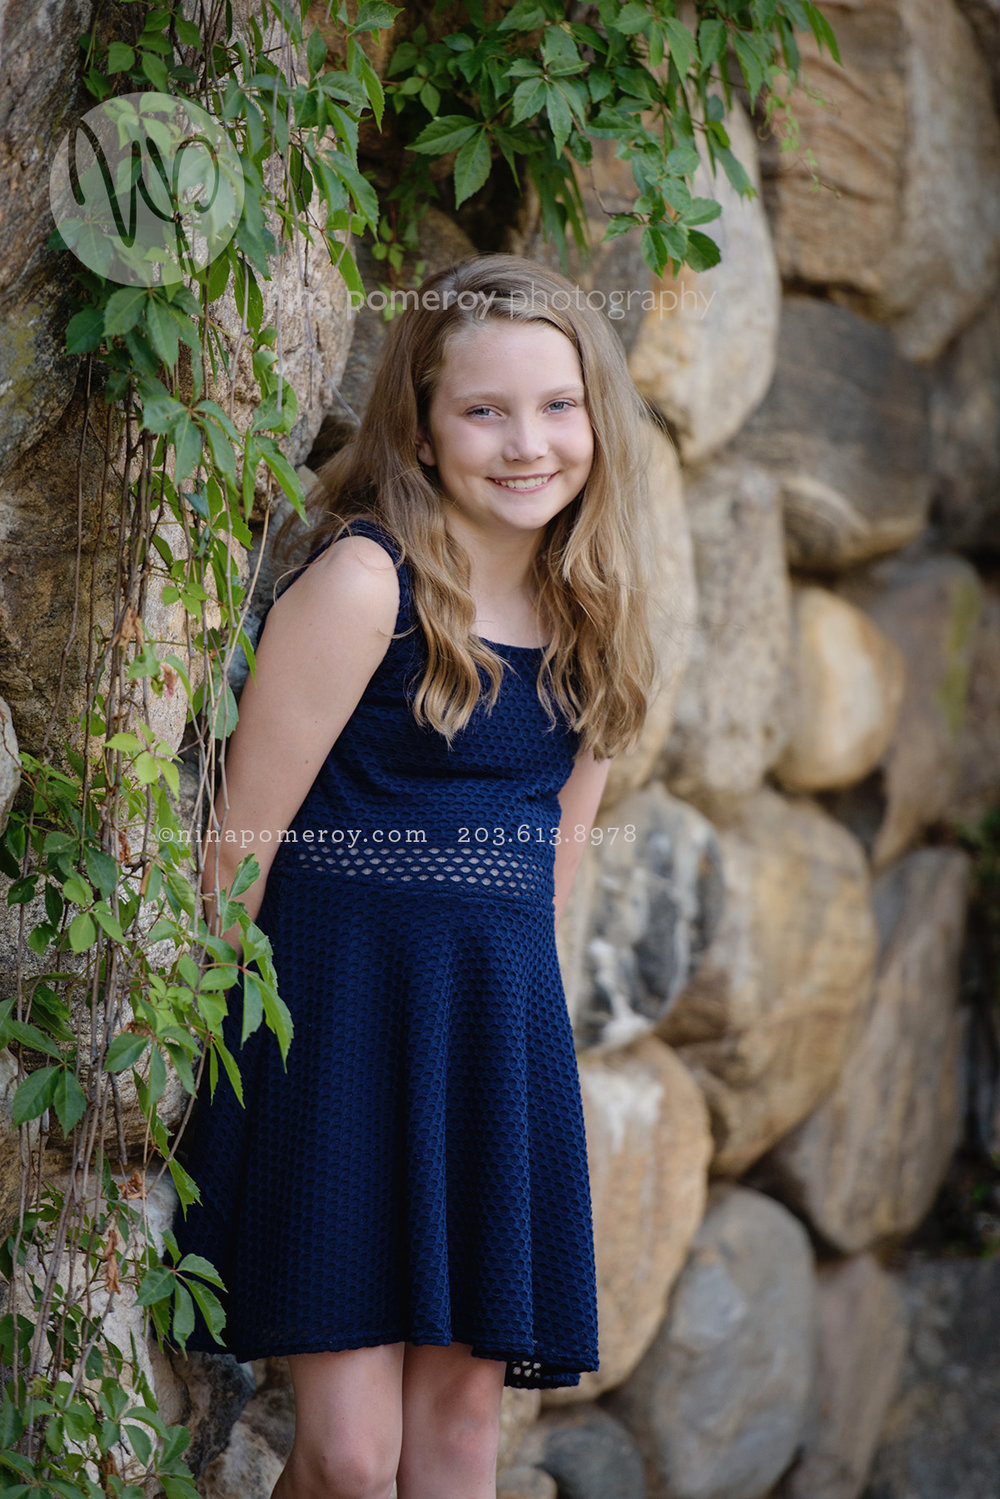 Tween teen girl portrait by rock wall and ivy wearing a blue dress taken by bay area photographer Nina Pomeroy.